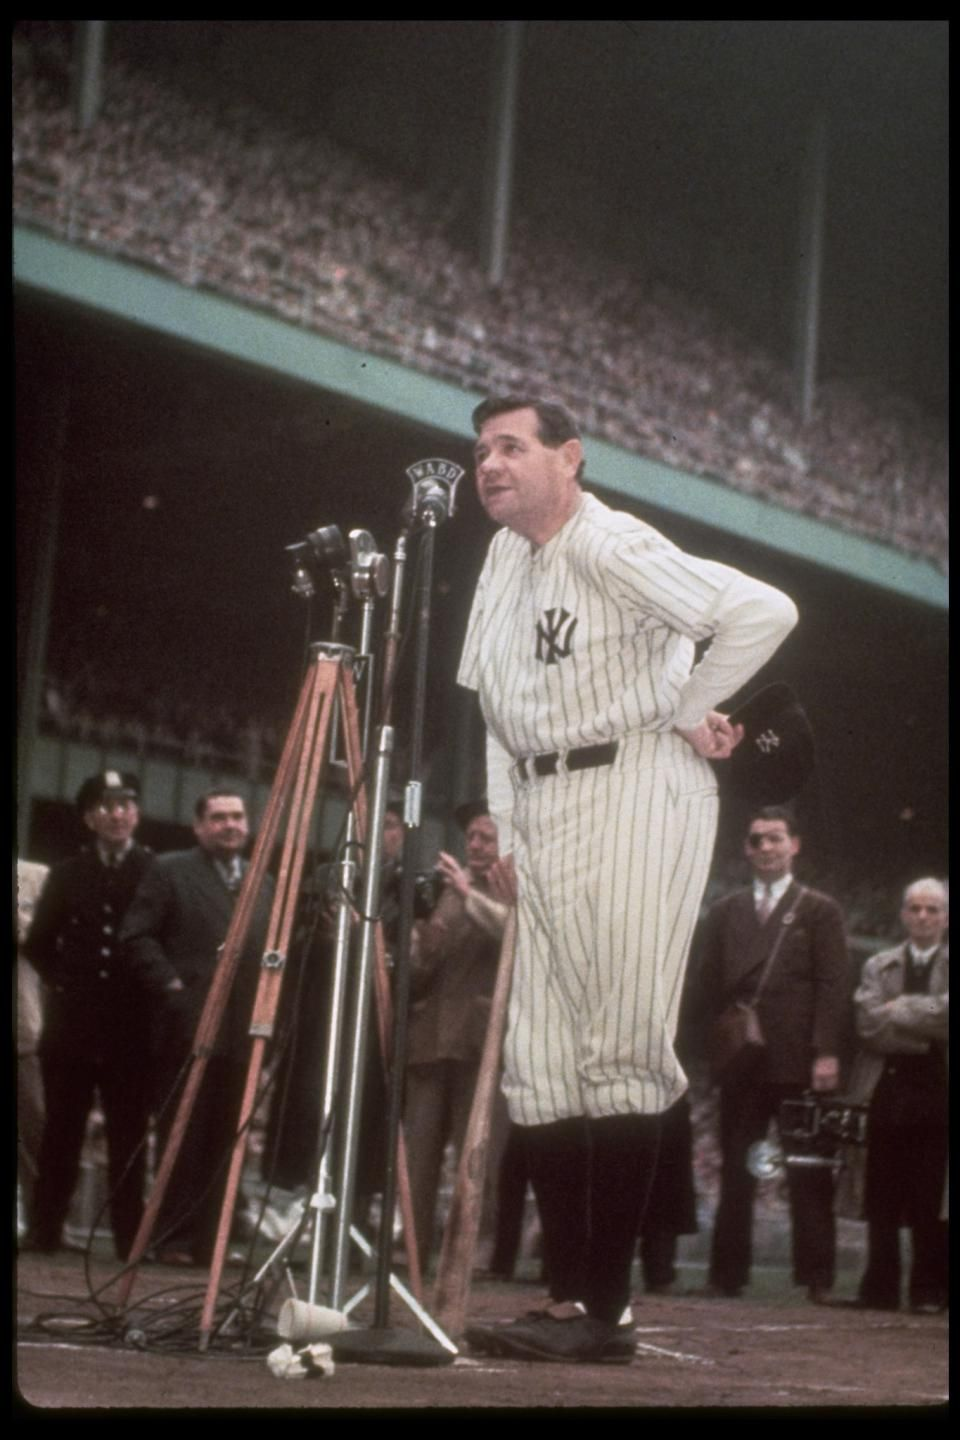 babe ruth thanks the crowd during his final public appearance in babe ruth thanks the crowd during his final public appearance in pinstripes 13